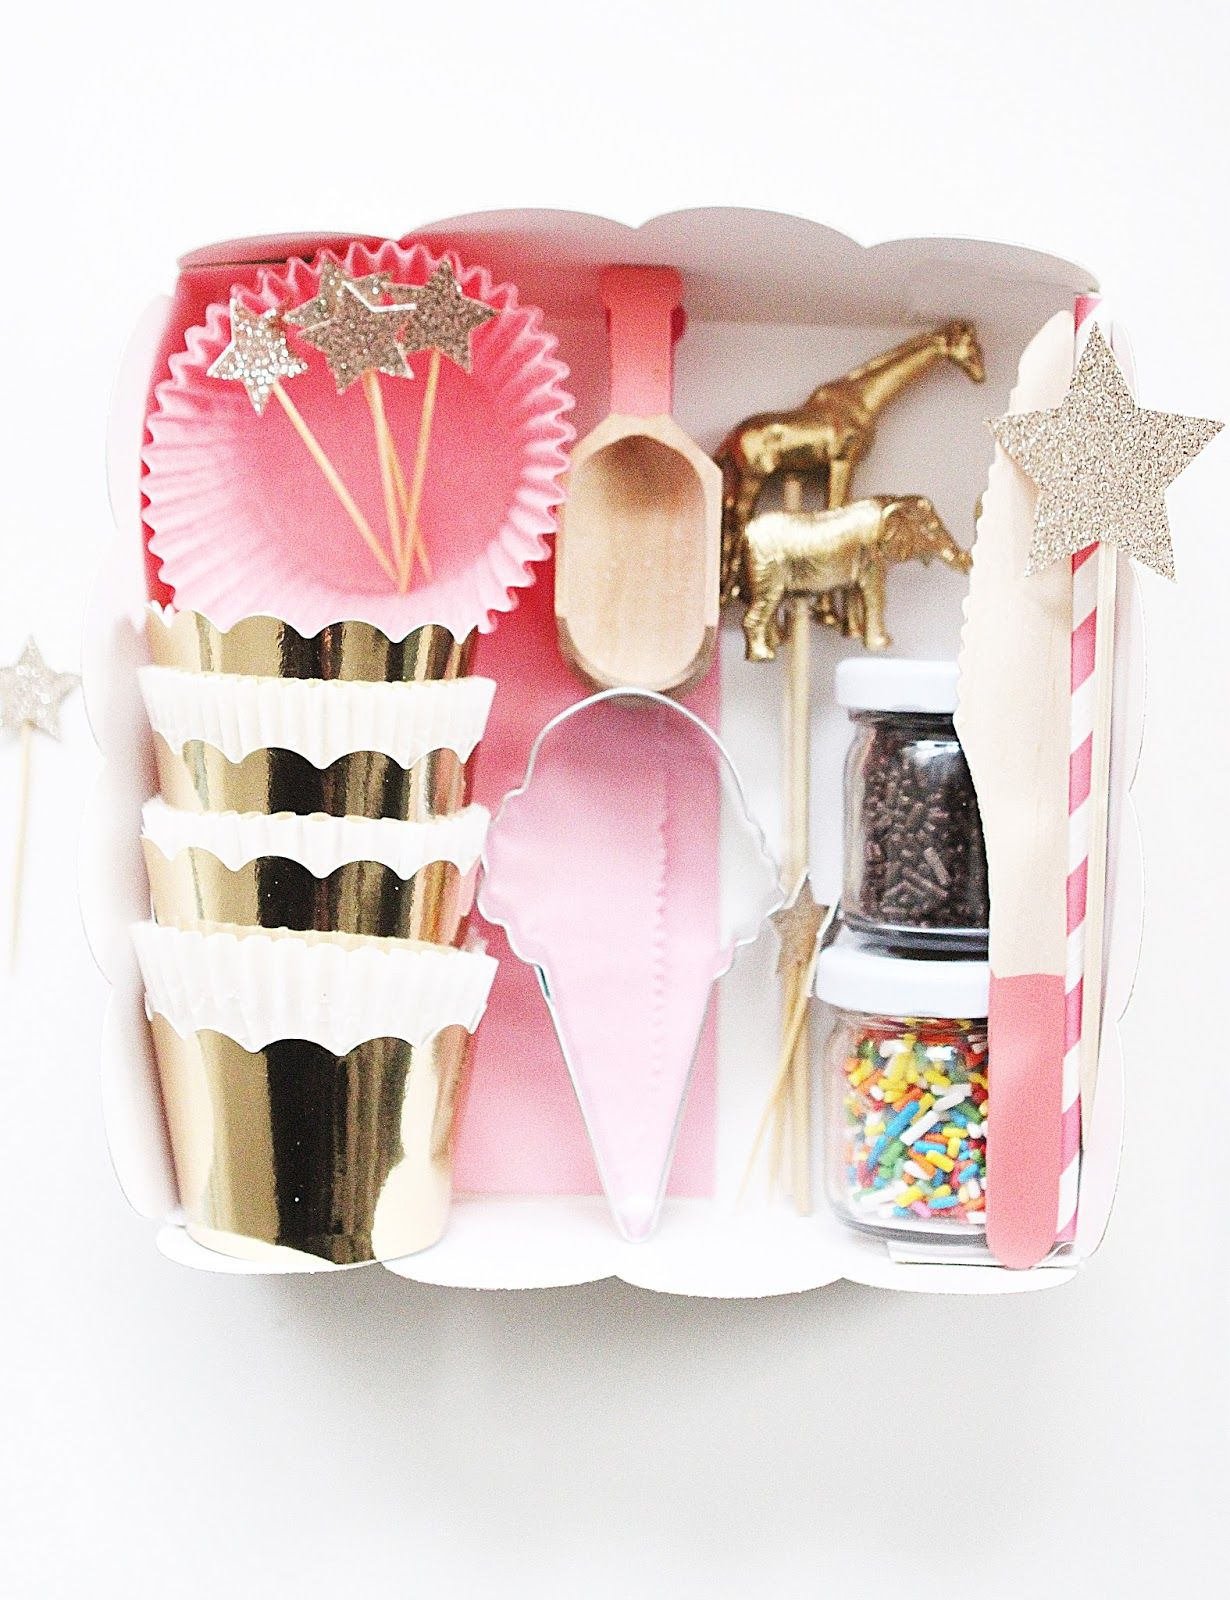 DIY cookie decorating party kit. (This could be a fun gift